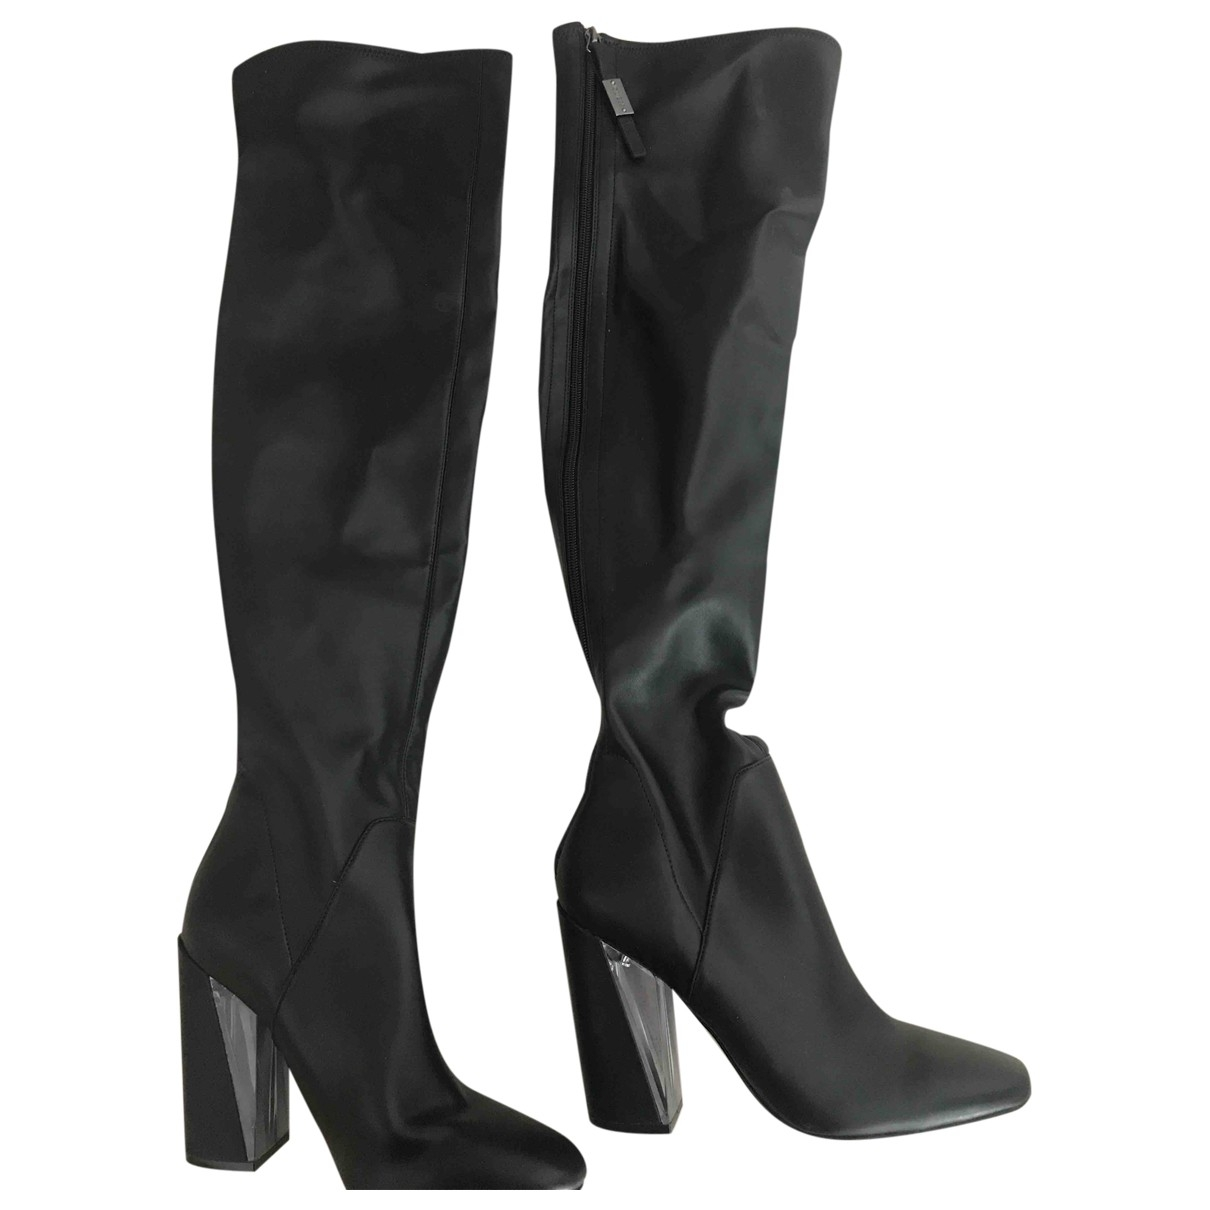 Guess \N Black Leather Boots for Women 36 EU